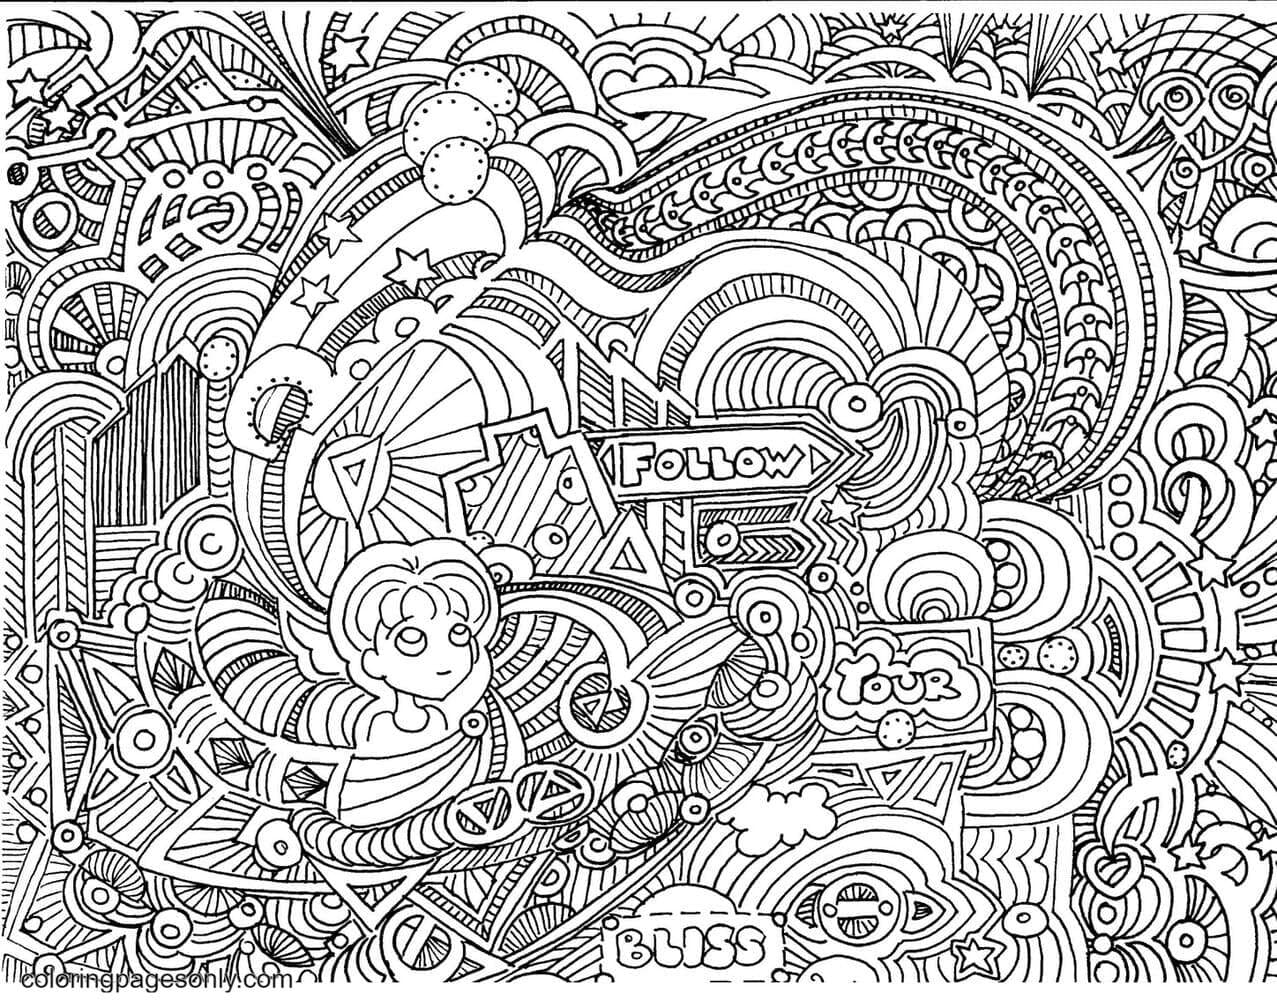 Follow Your Bliss Doodle Coloring Page